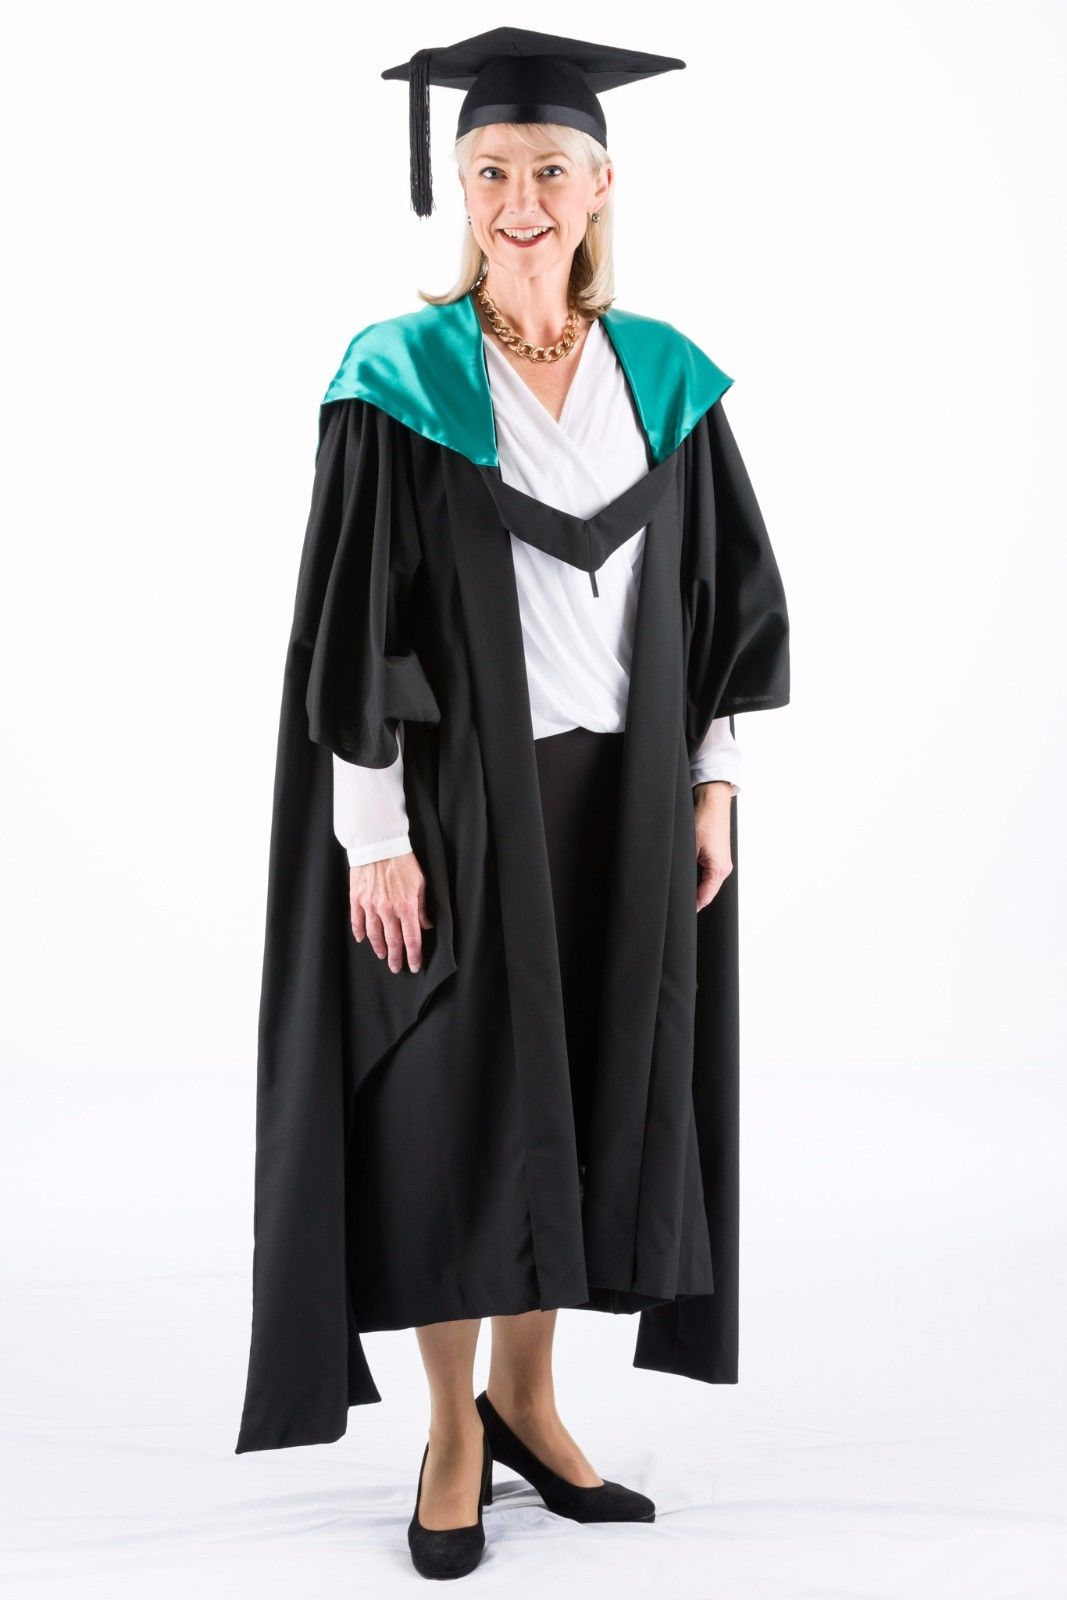 University-Academic-Hood-Graduation-Masters-Fully-Lined-with-Malacite-Green-382202353628